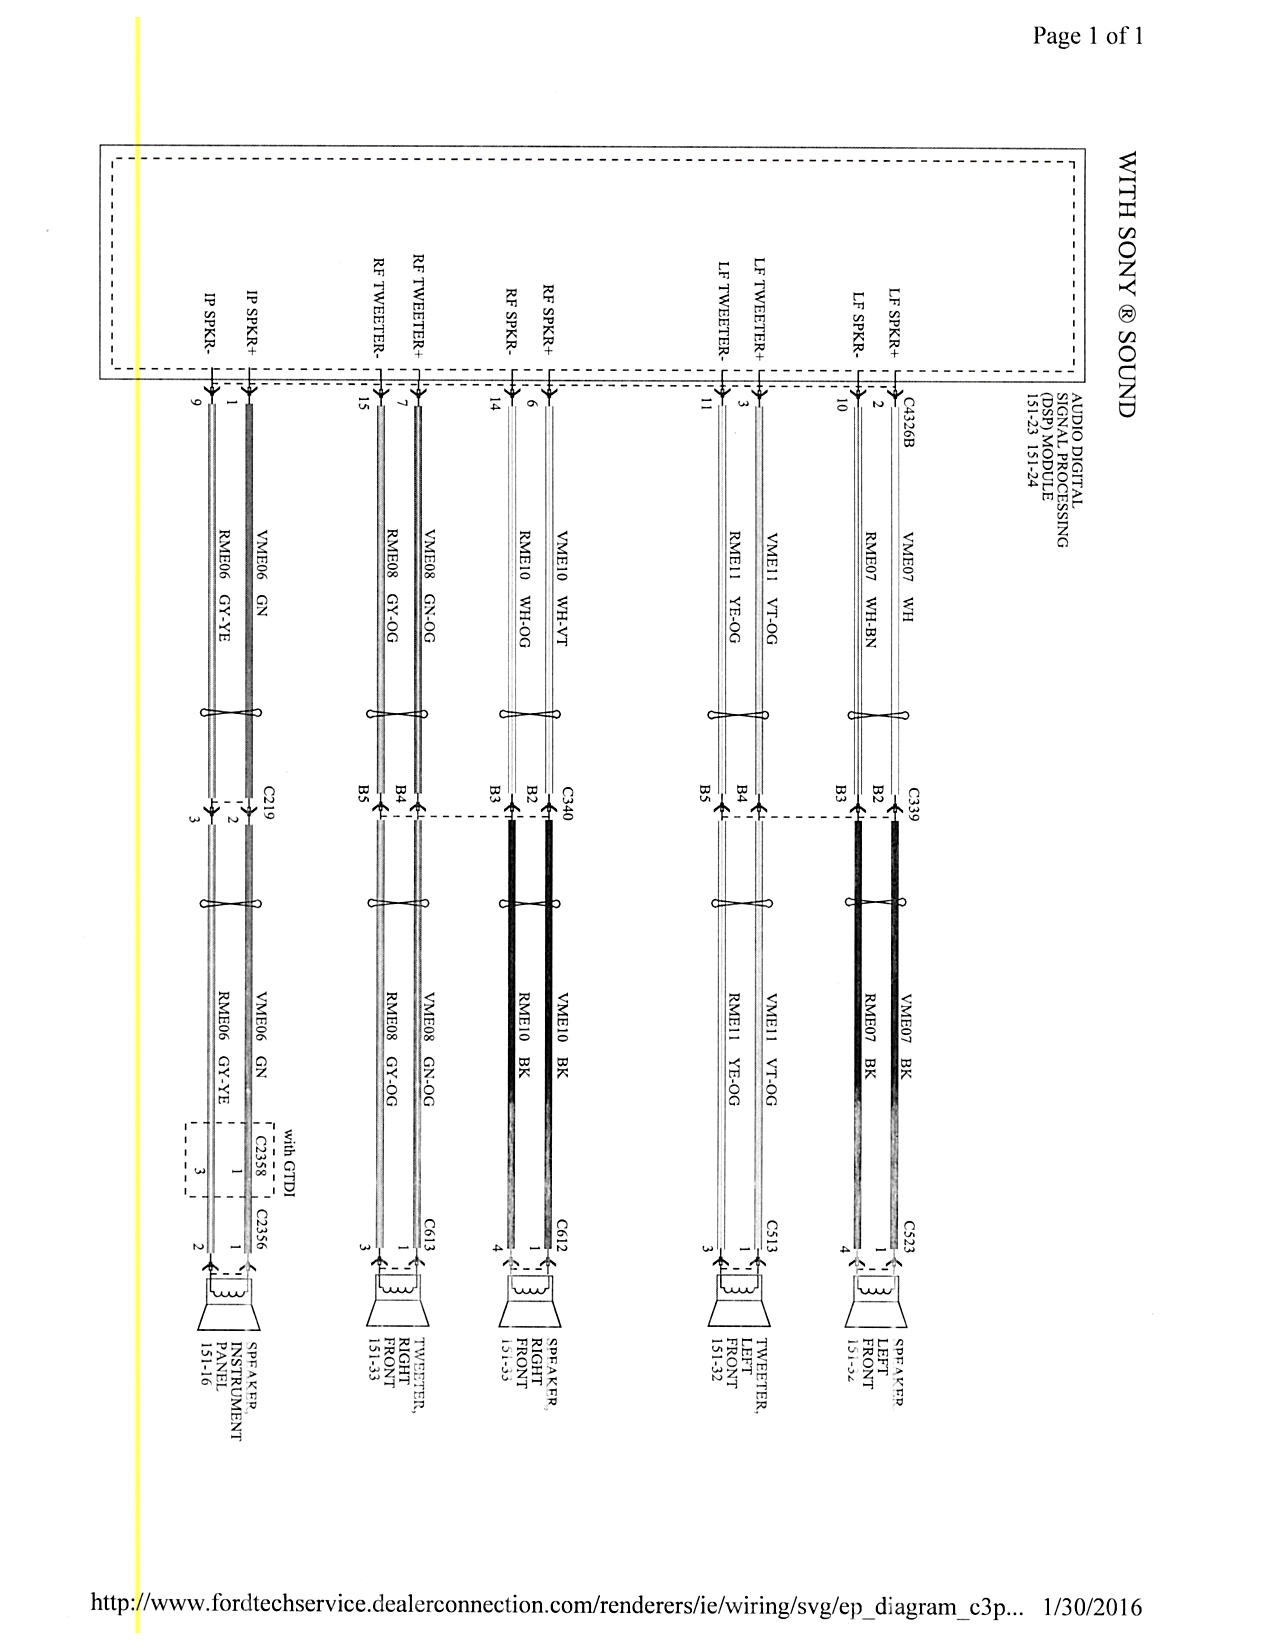 2015 Focus Mk3 5 Stereo Wiring Diagram? Ford Focus Forum, Ford Ford Focus  Engine Noise Ford Focus Stereo Wiring Diagram